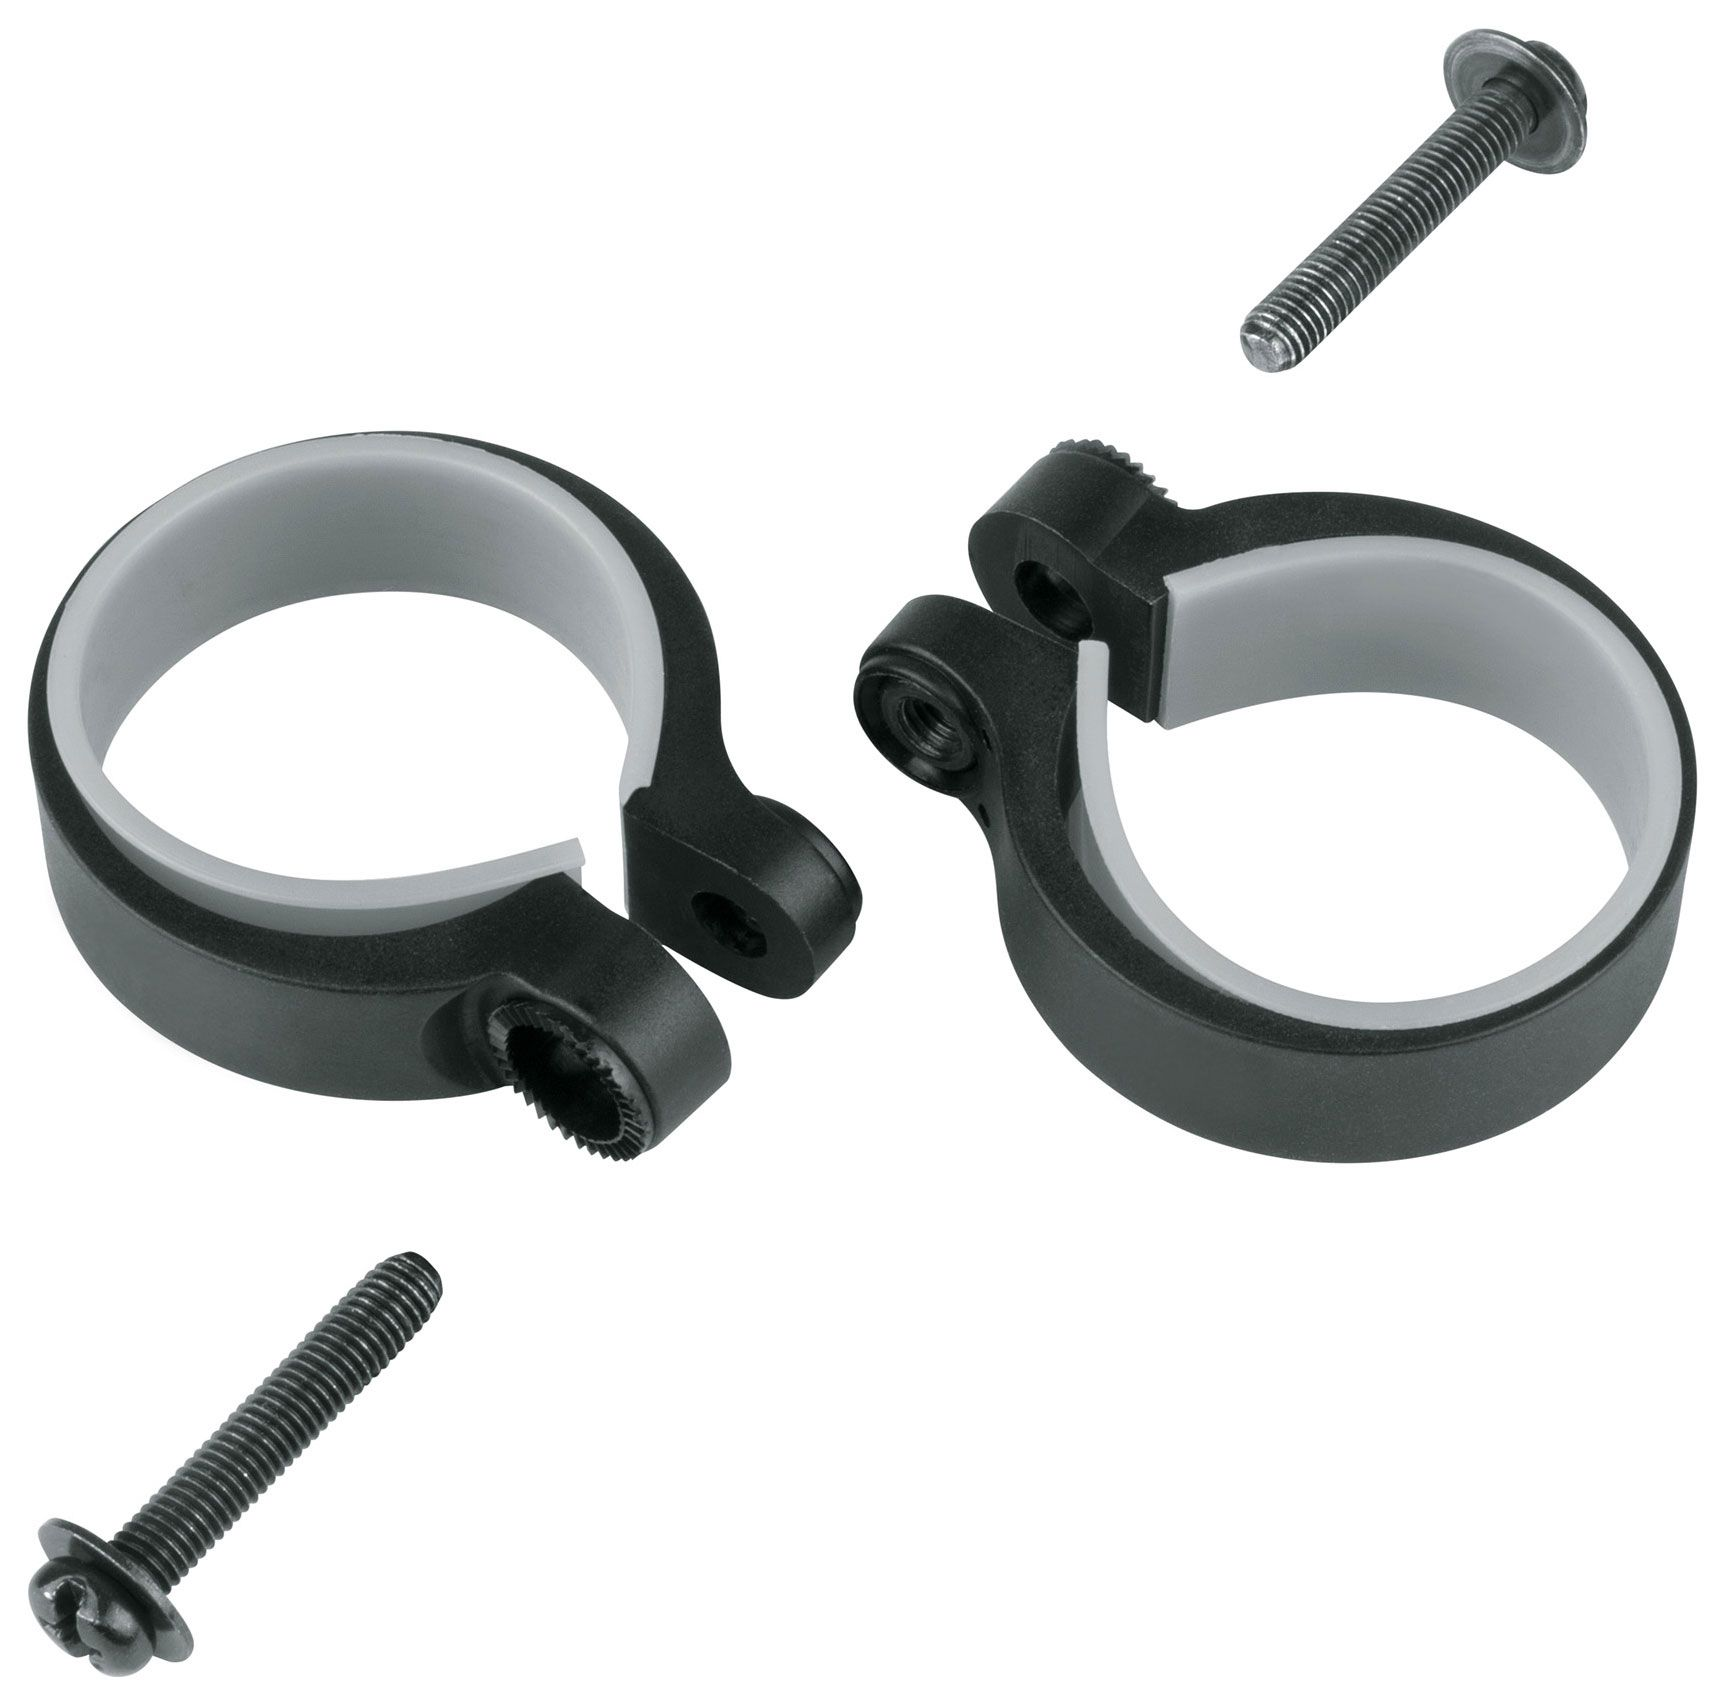 Запчасть SKS Stay Mounting Clamps 2 Pcs. 31,0 - 34,5Mm (SKS-11483) artina sks artina sks 10053